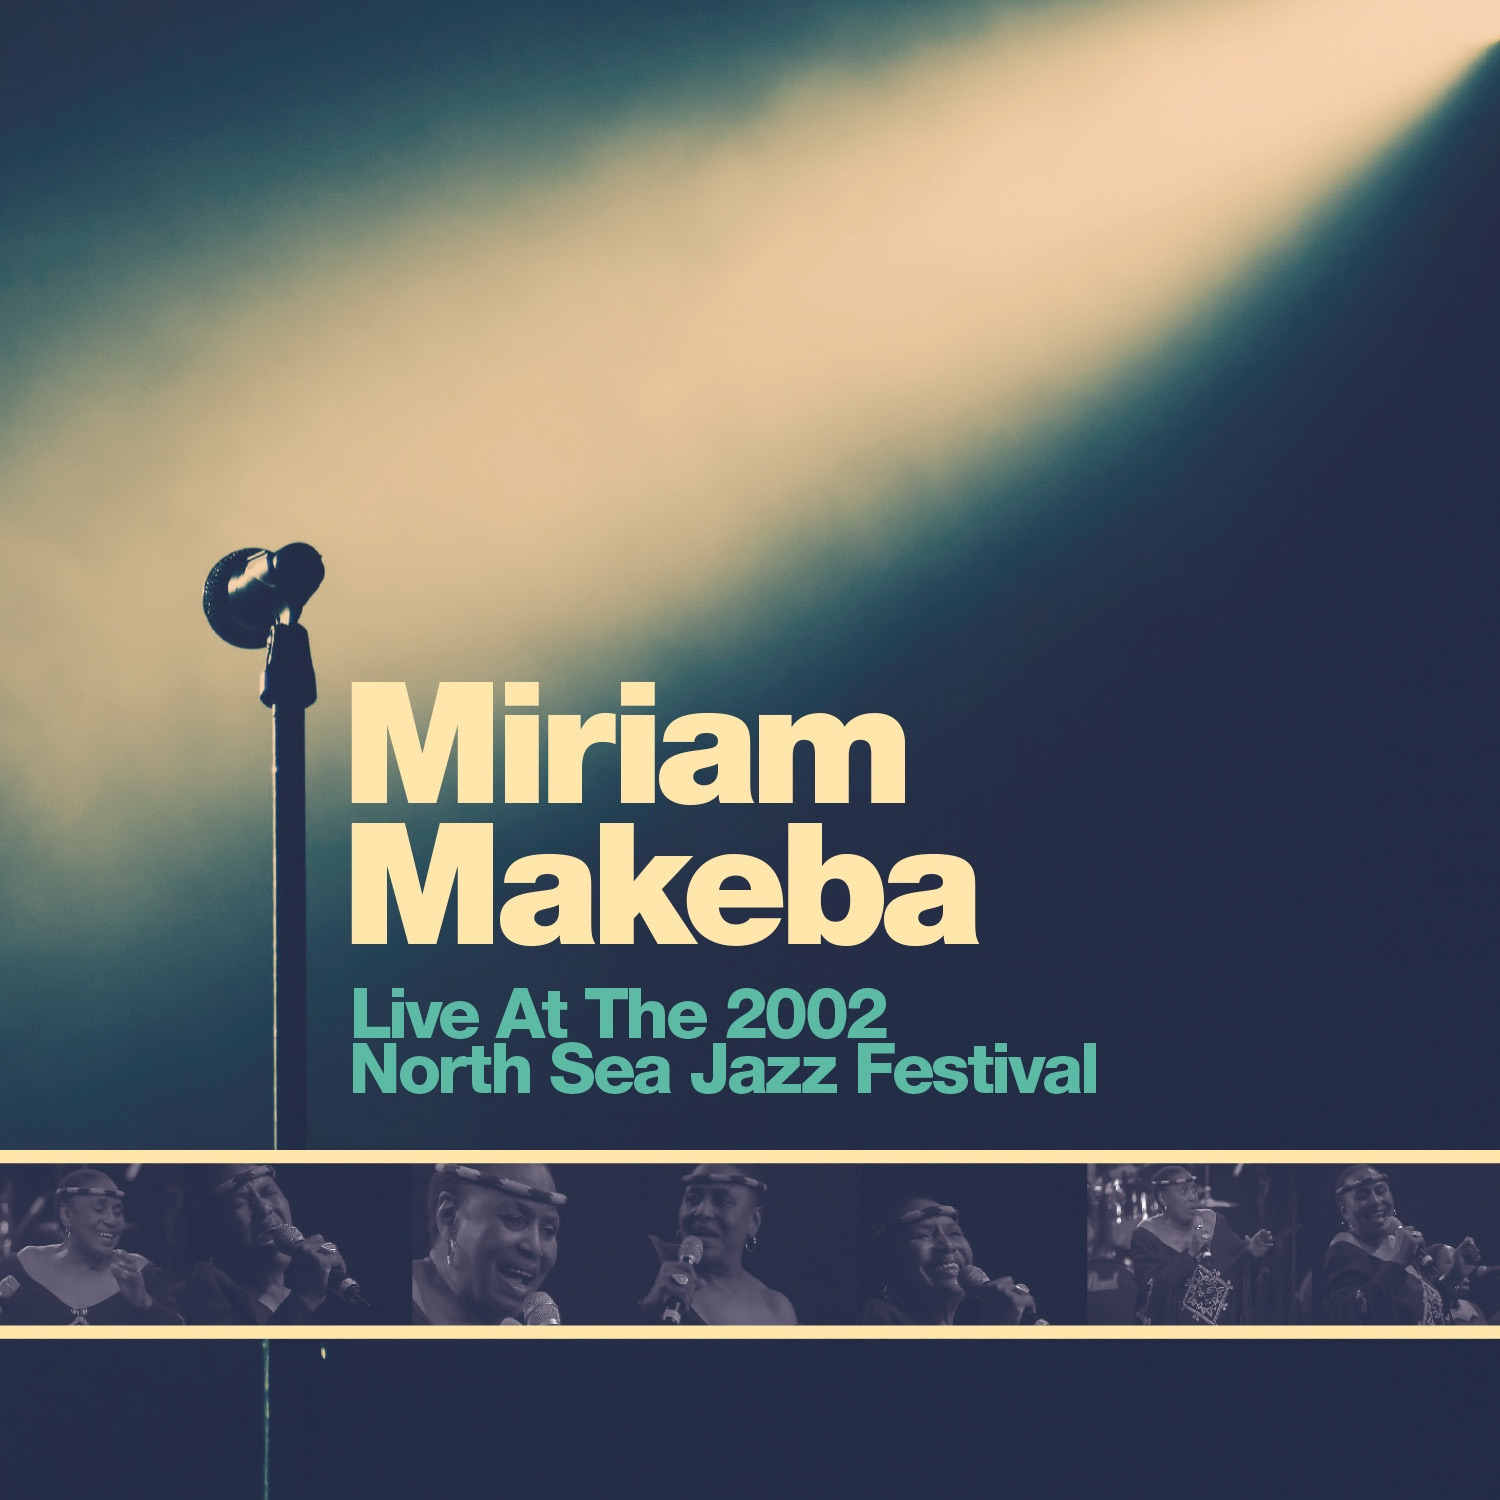 Live at the 2002 North Sea Jazz Festival